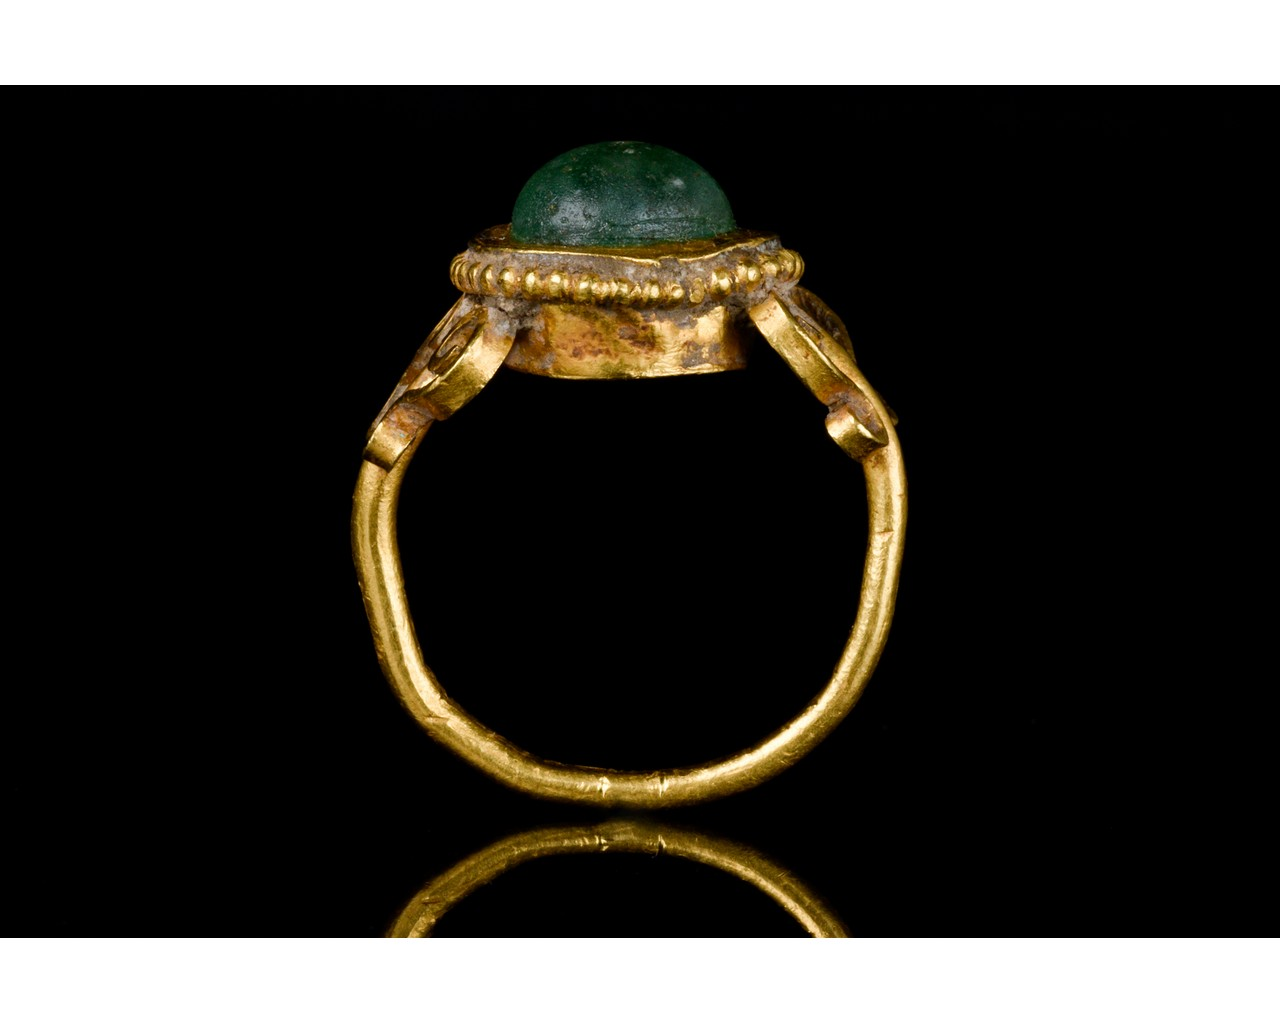 LATE ROMAN GOLD AND GLASS RING - EX CHRISTIE'S - FULL ANALYSIS - Image 5 of 8